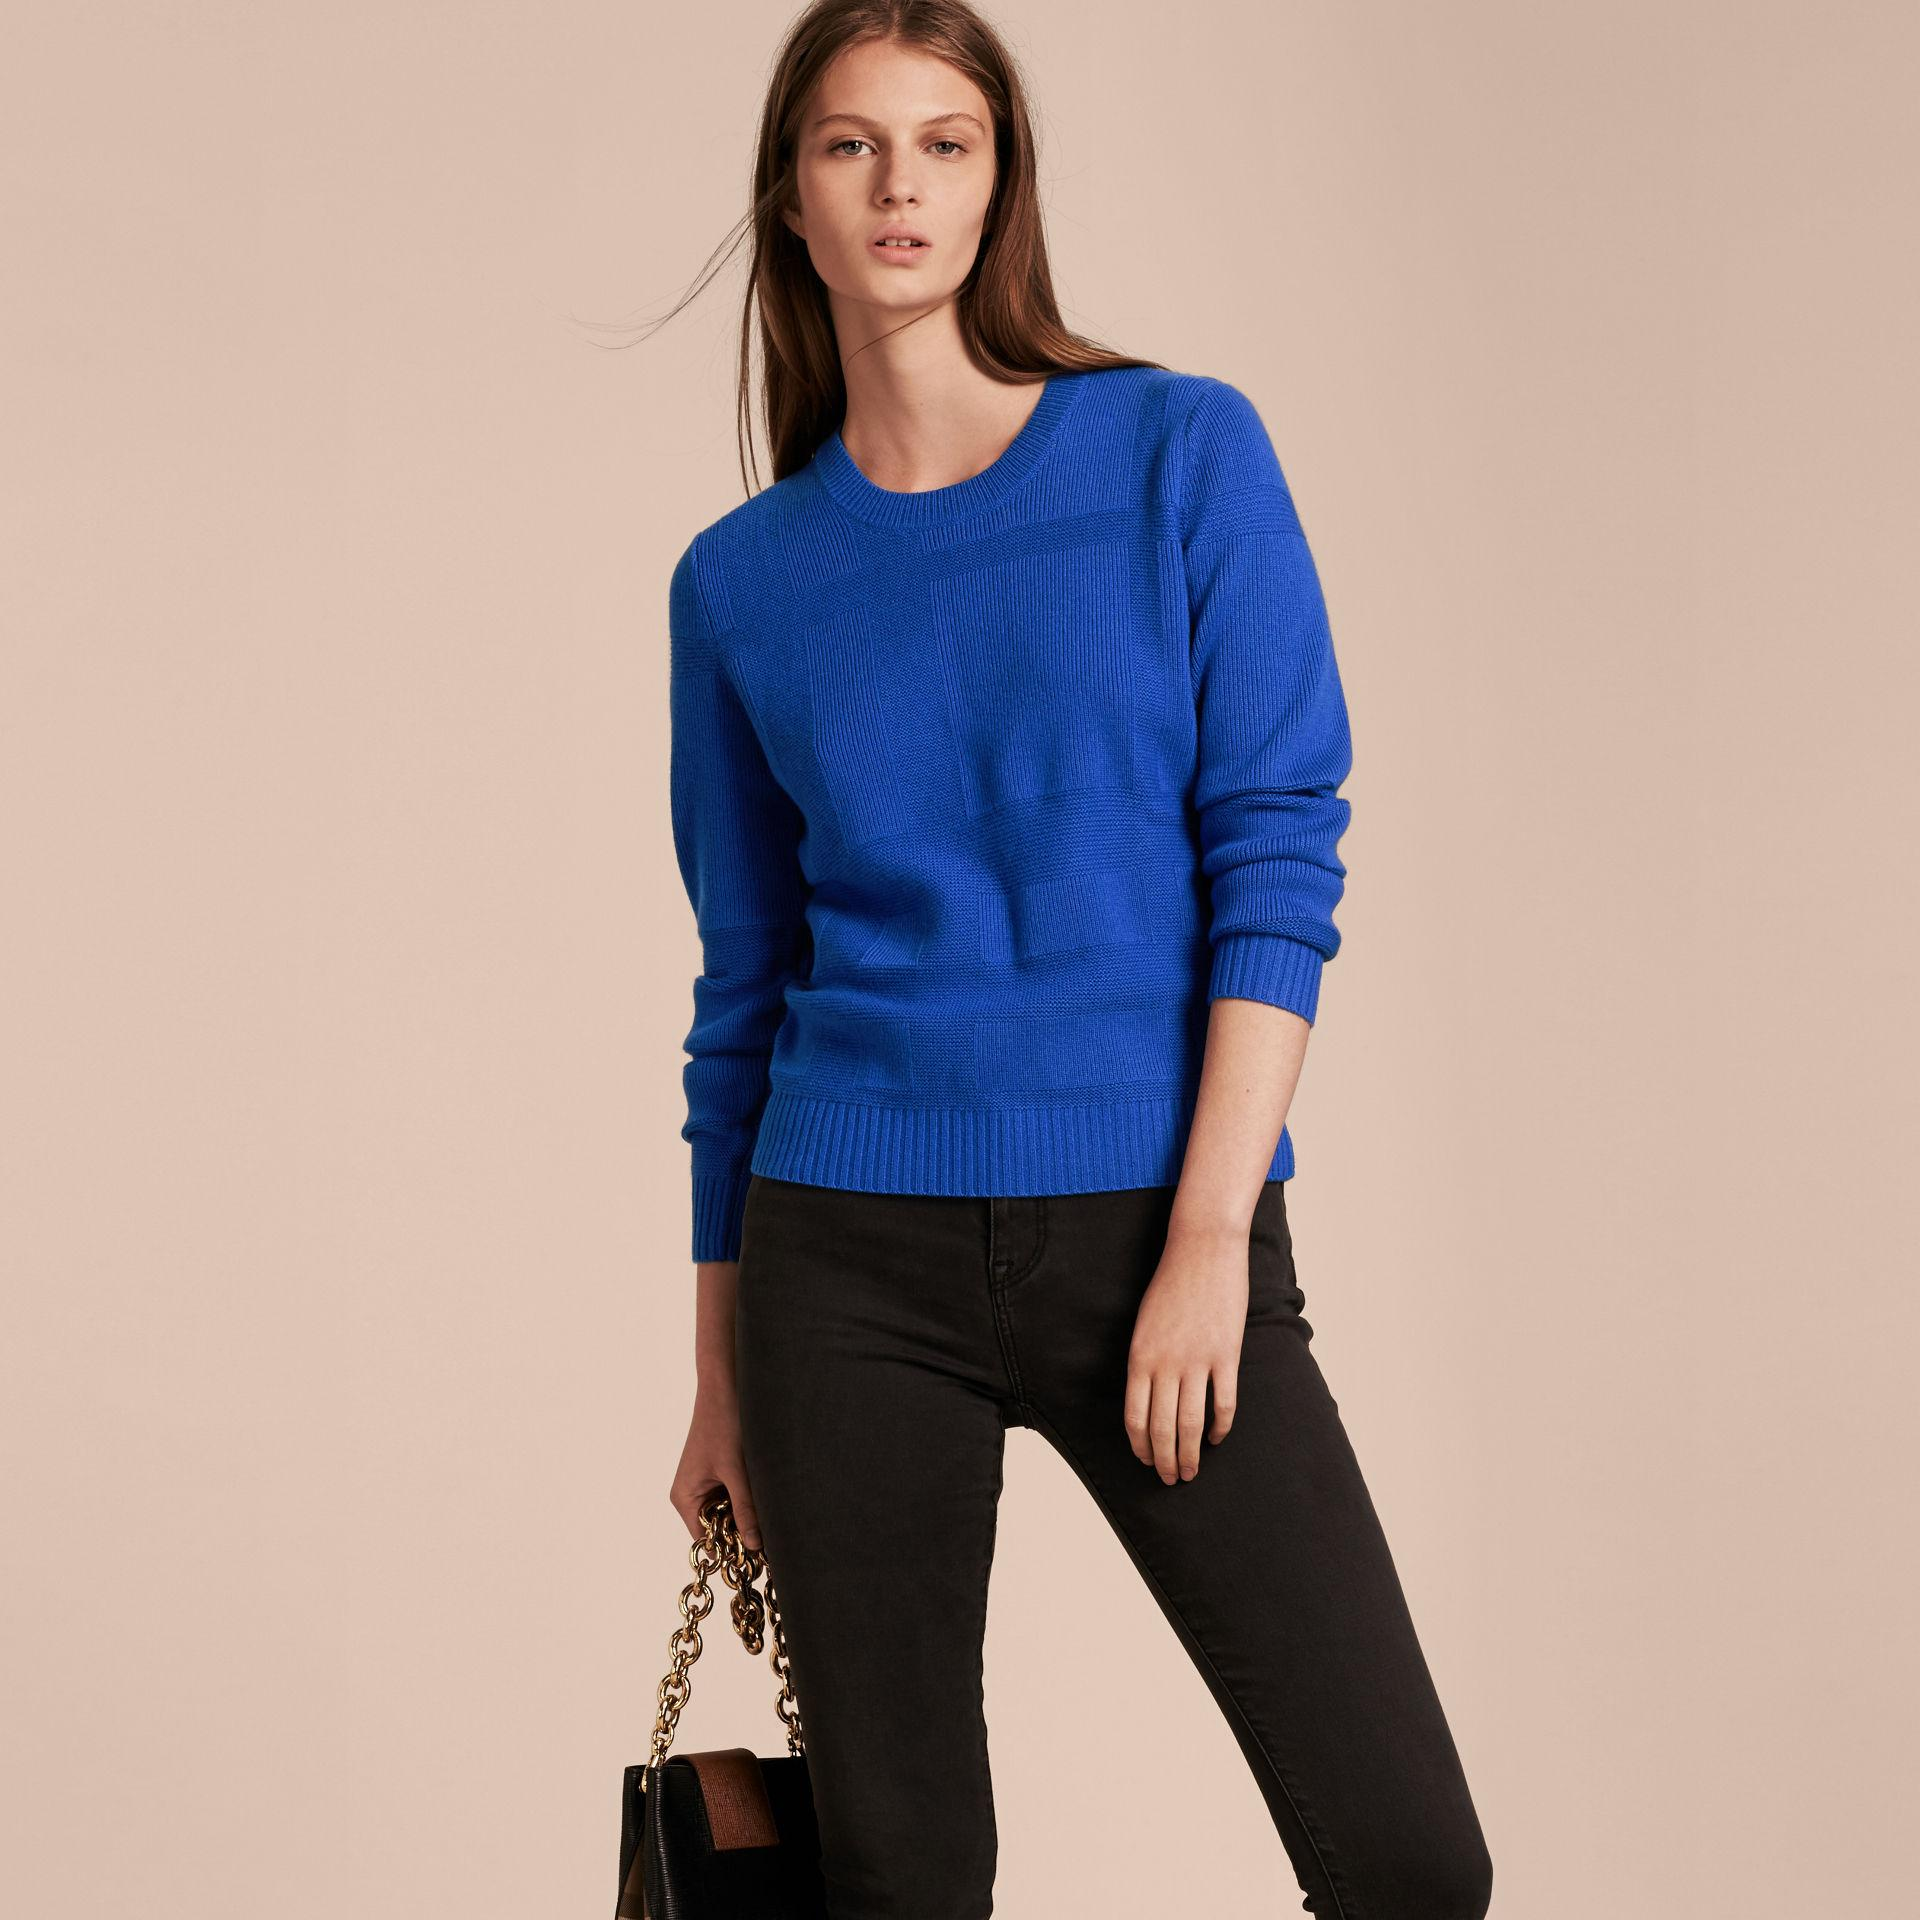 Burberry Check-knit Wool Cashmere Sweater Sapphire Blue in Blue | Lyst